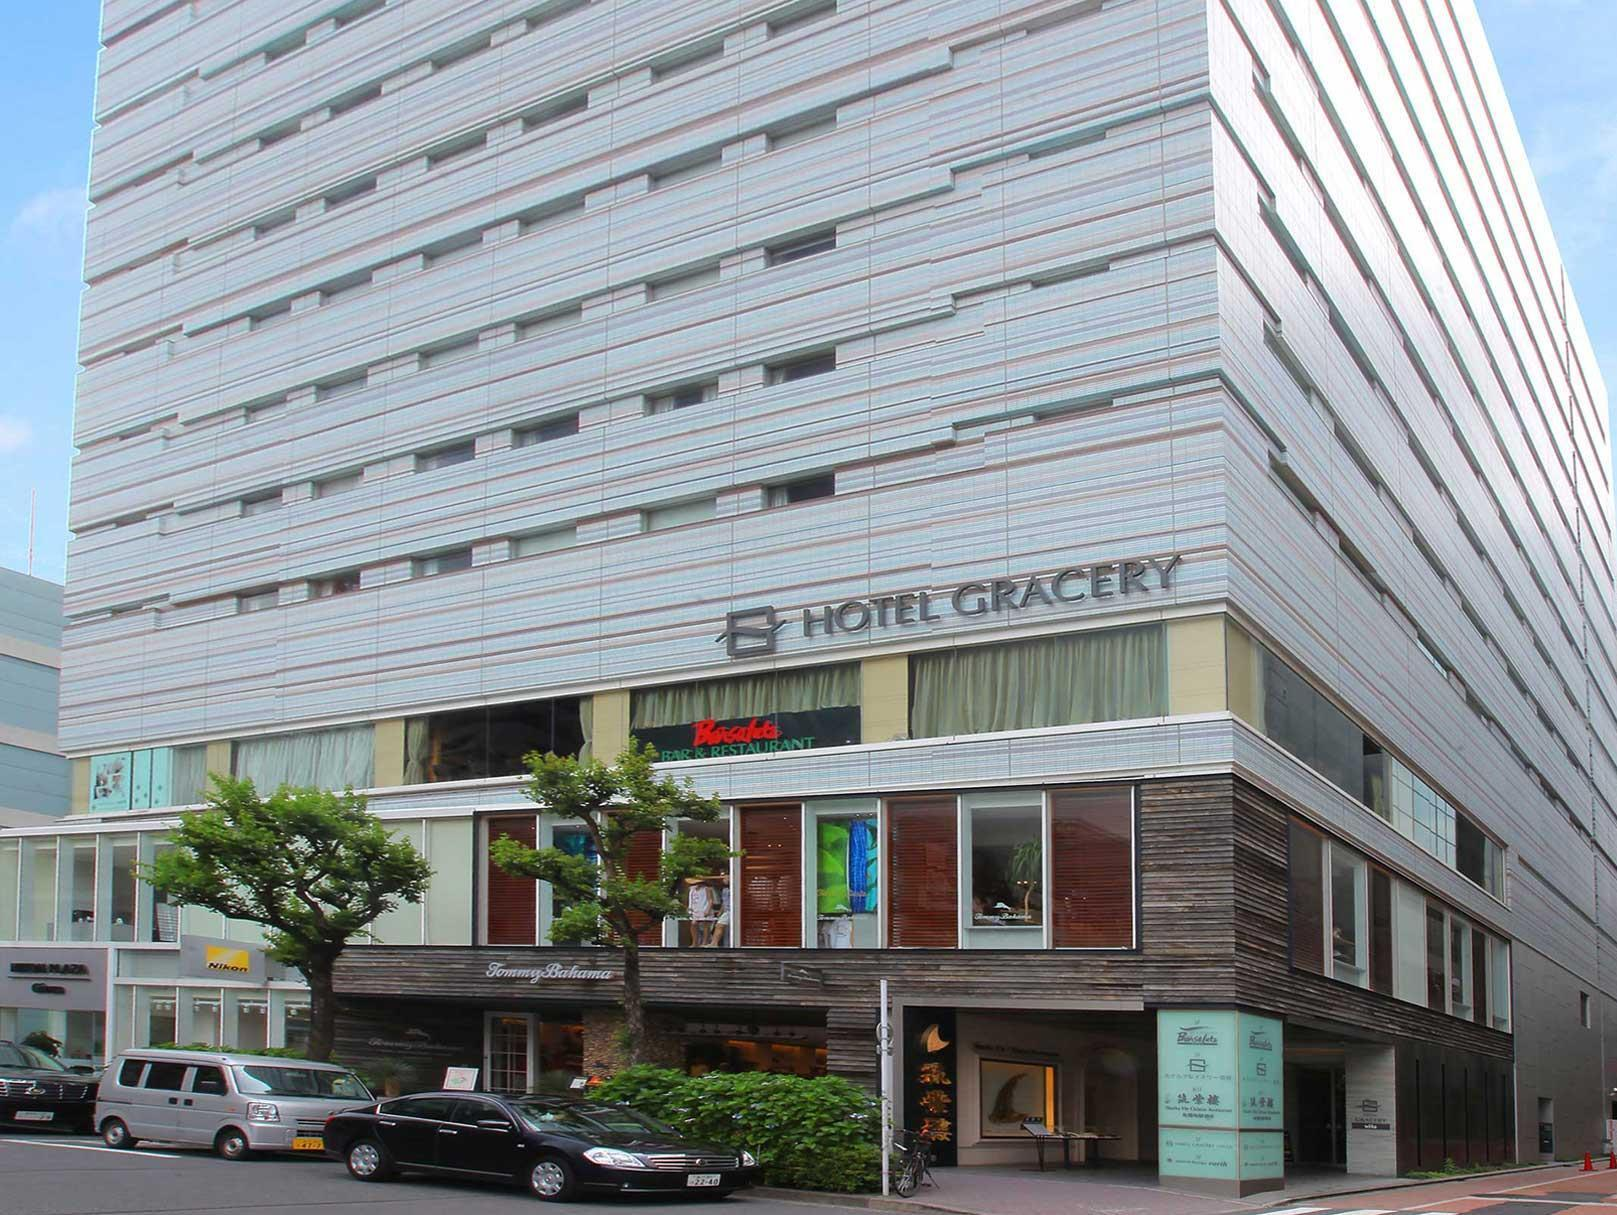 Best Price on Hotel Gracery Ginza in Tokyo Reviews